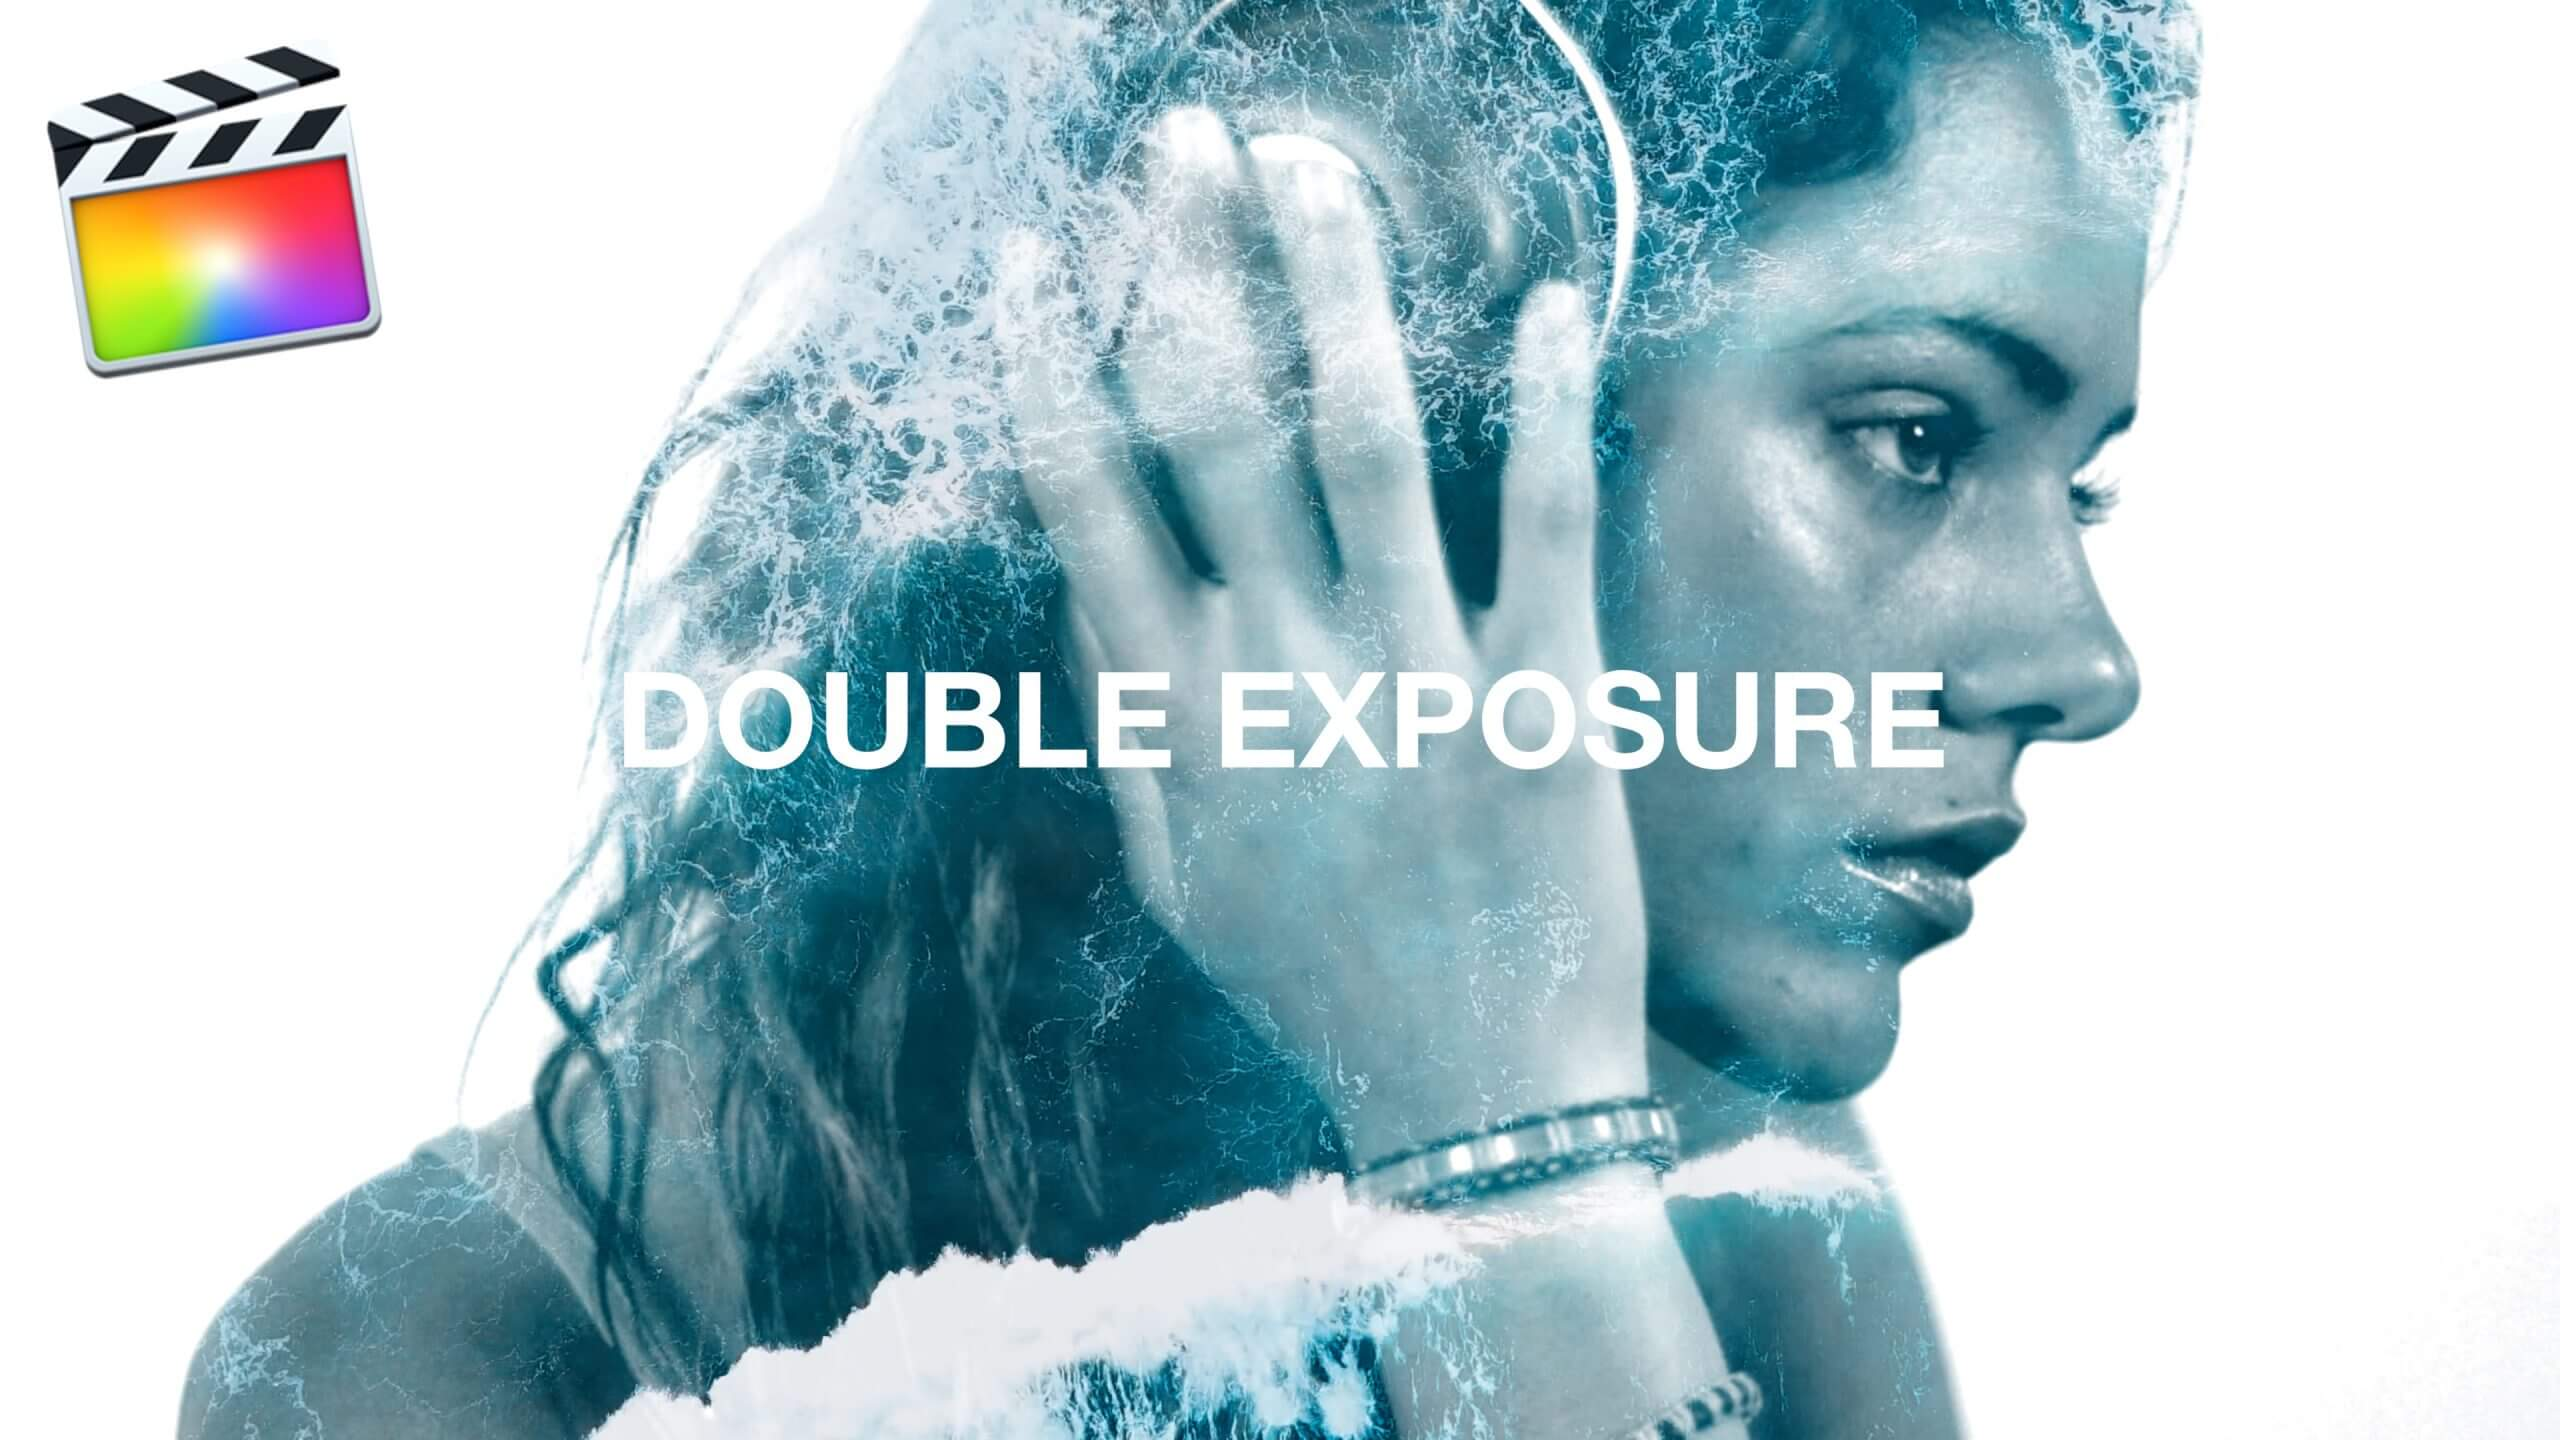 Final Cut Pro X 二重露光「Double Exposure Effect」の方法